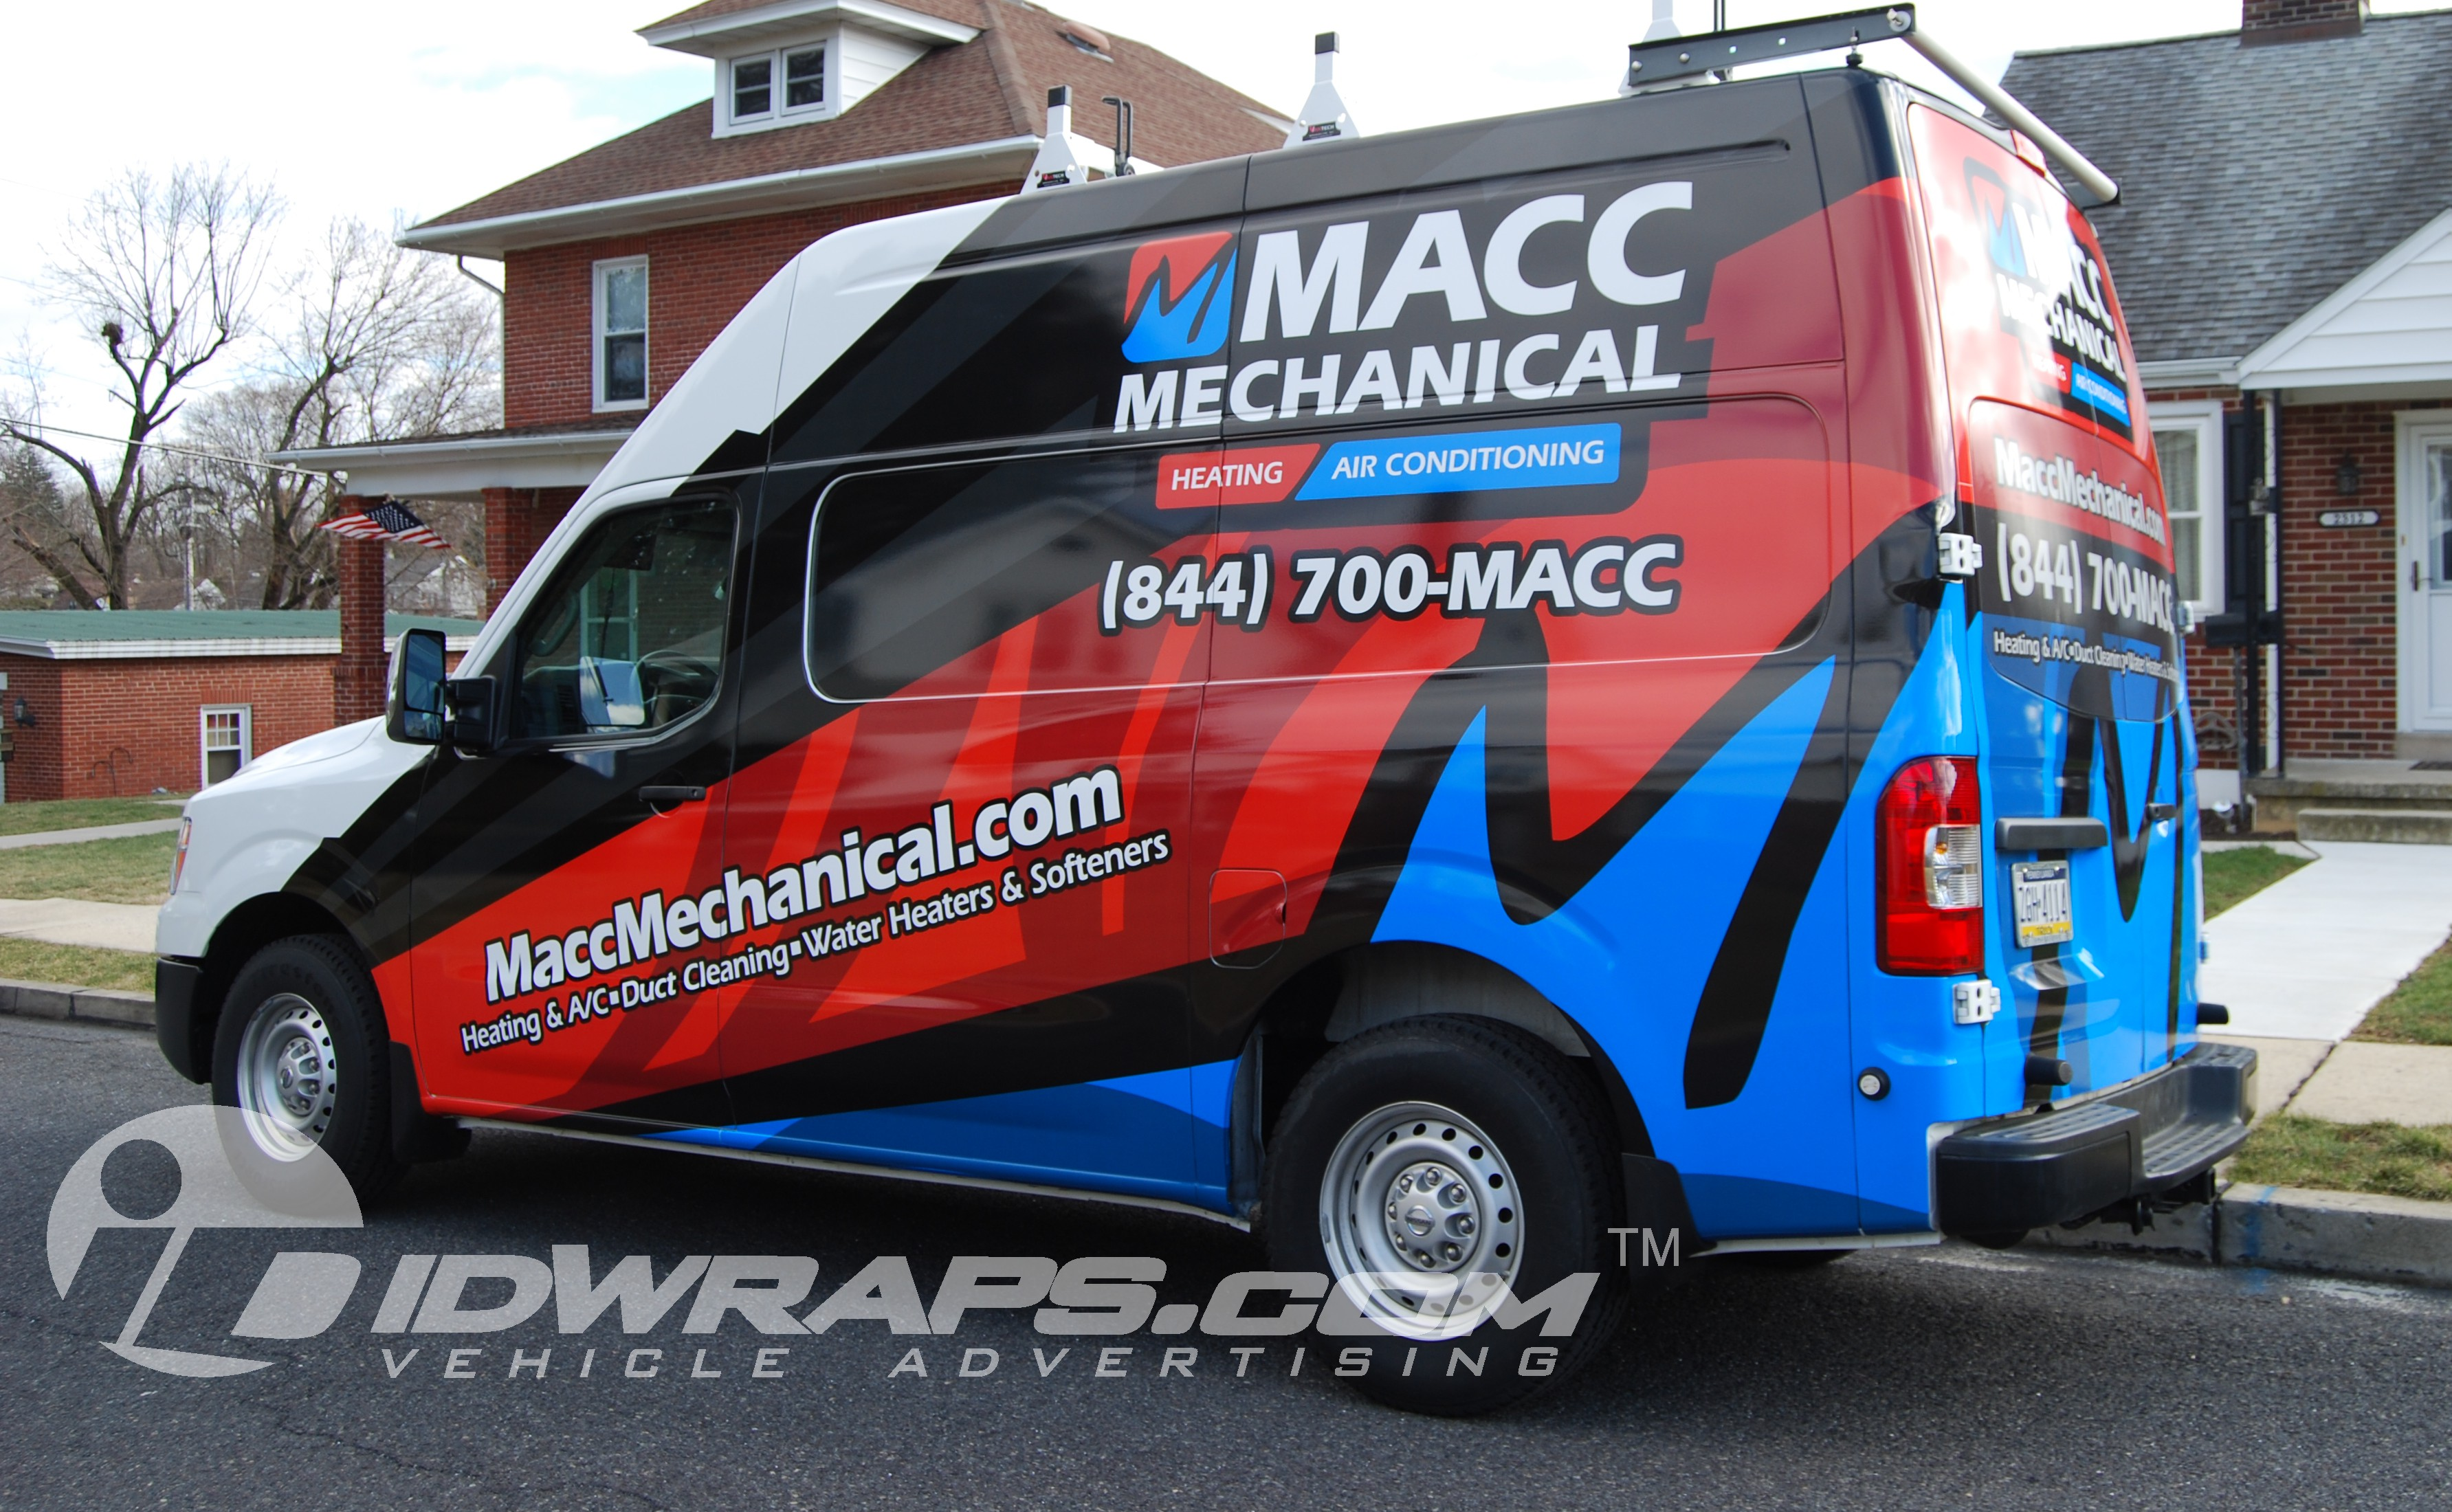 Nissan NV Wrap for Macc Mechanical